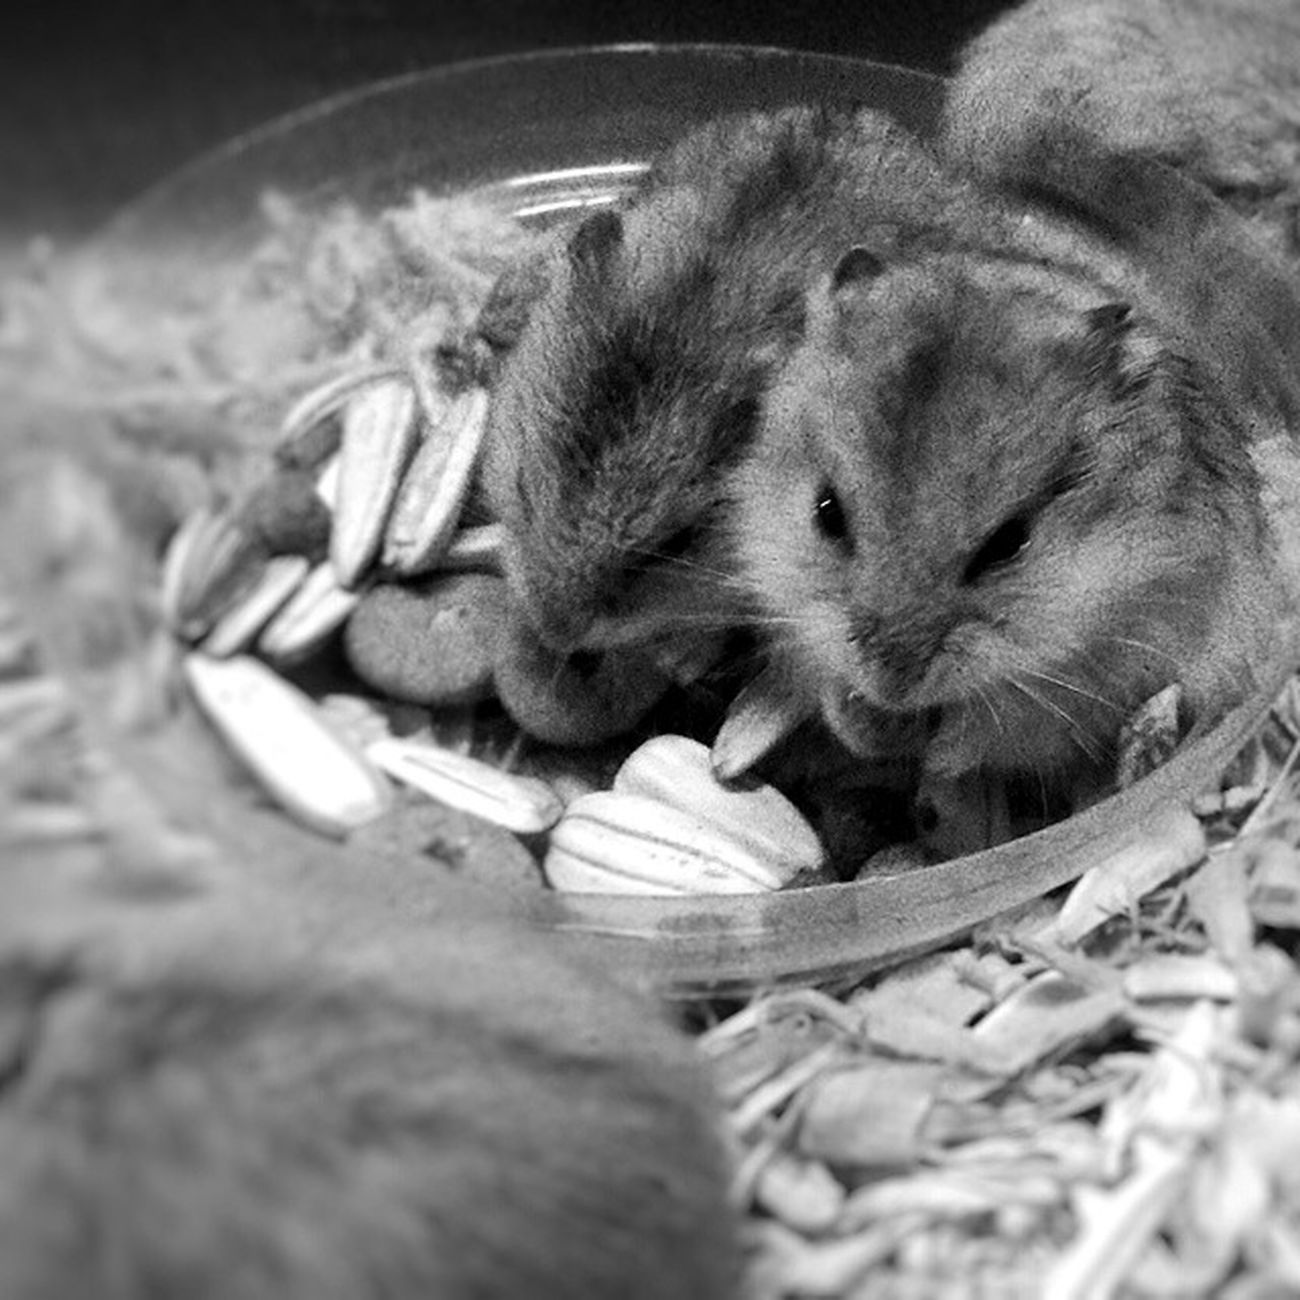 They're as big as your thumb. Morning Morningactivity POTD Thursday breakfast seeds nuts hamster hamsters babyhamsters babyanimals pet fluffy blackandwhite blackandwhitephotography colorless world_bnw bw_awards insta_bw bnw_planet ae_bnw bnw bnw_society bwstyles_gf bnw_diamond bnw_life rsa_bnw